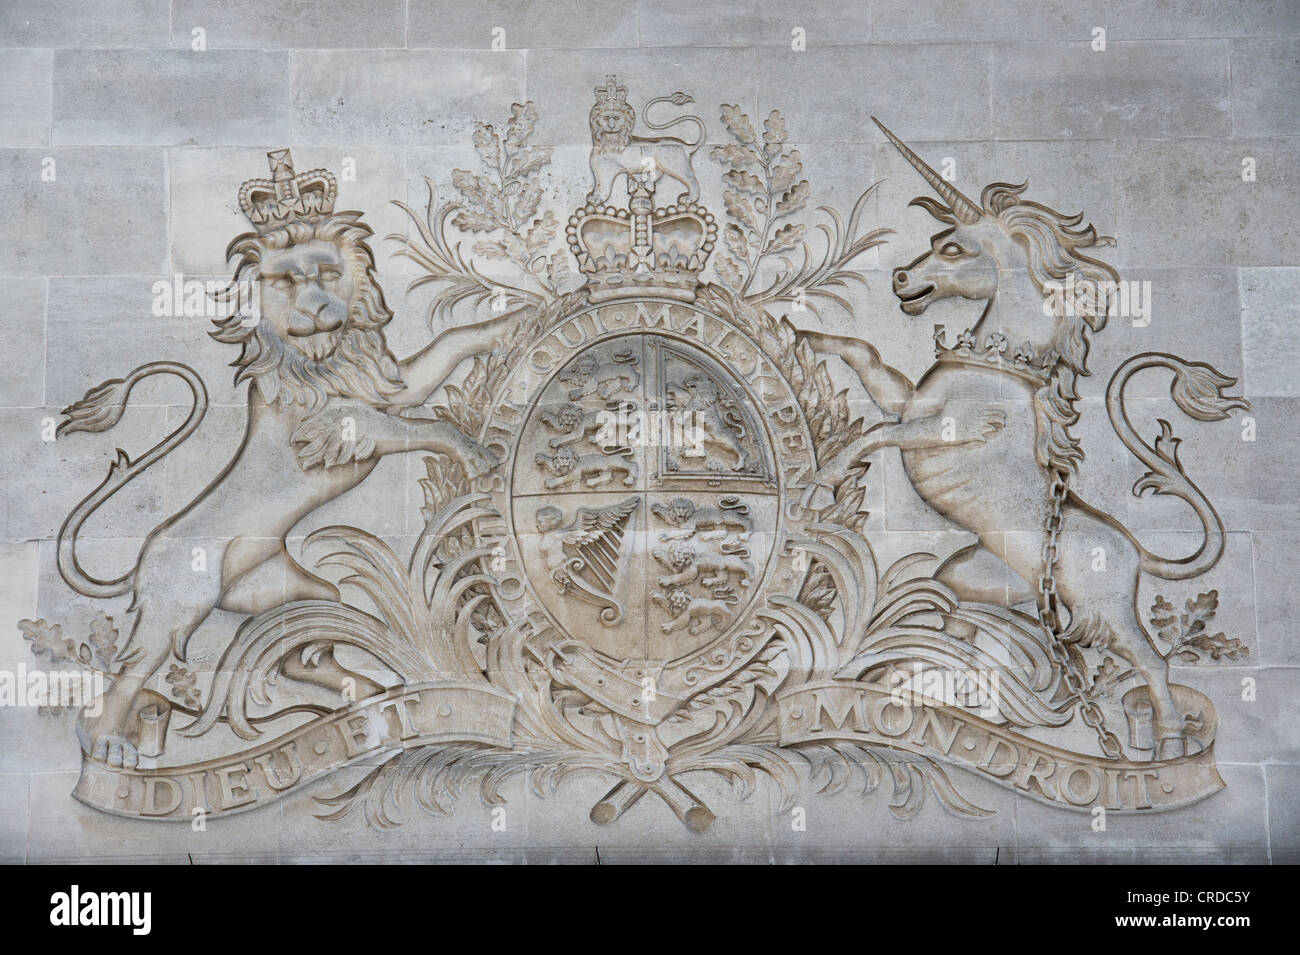 The Royal Coat of Arms stone carving. James Street, London - Stock Image